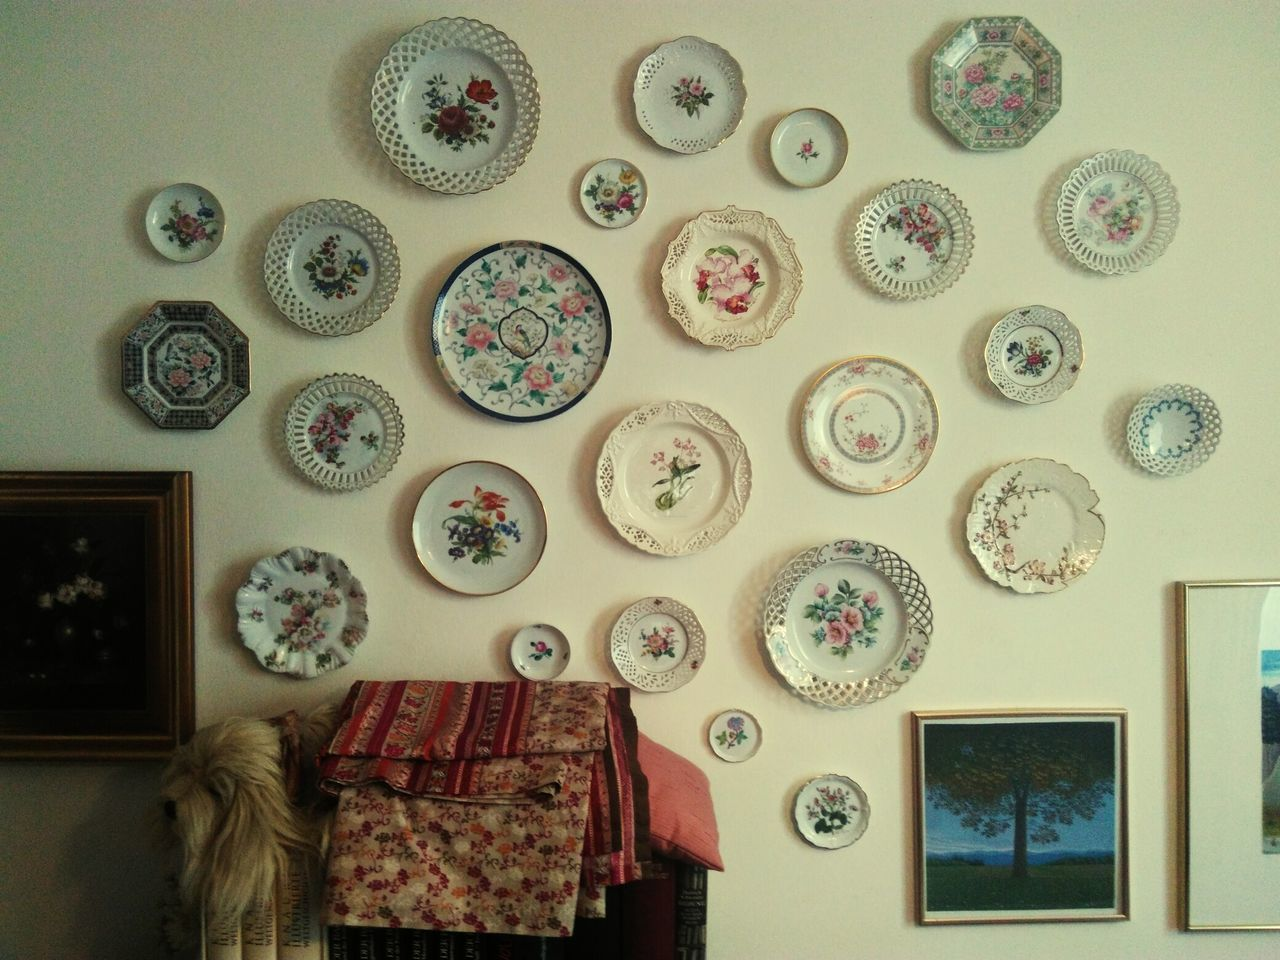 Beautifully Organized Plate Teller Wall Plates Wandteller Indoors  Pattern Hanging Plates Decoration Large Group Of Objects Arrangement